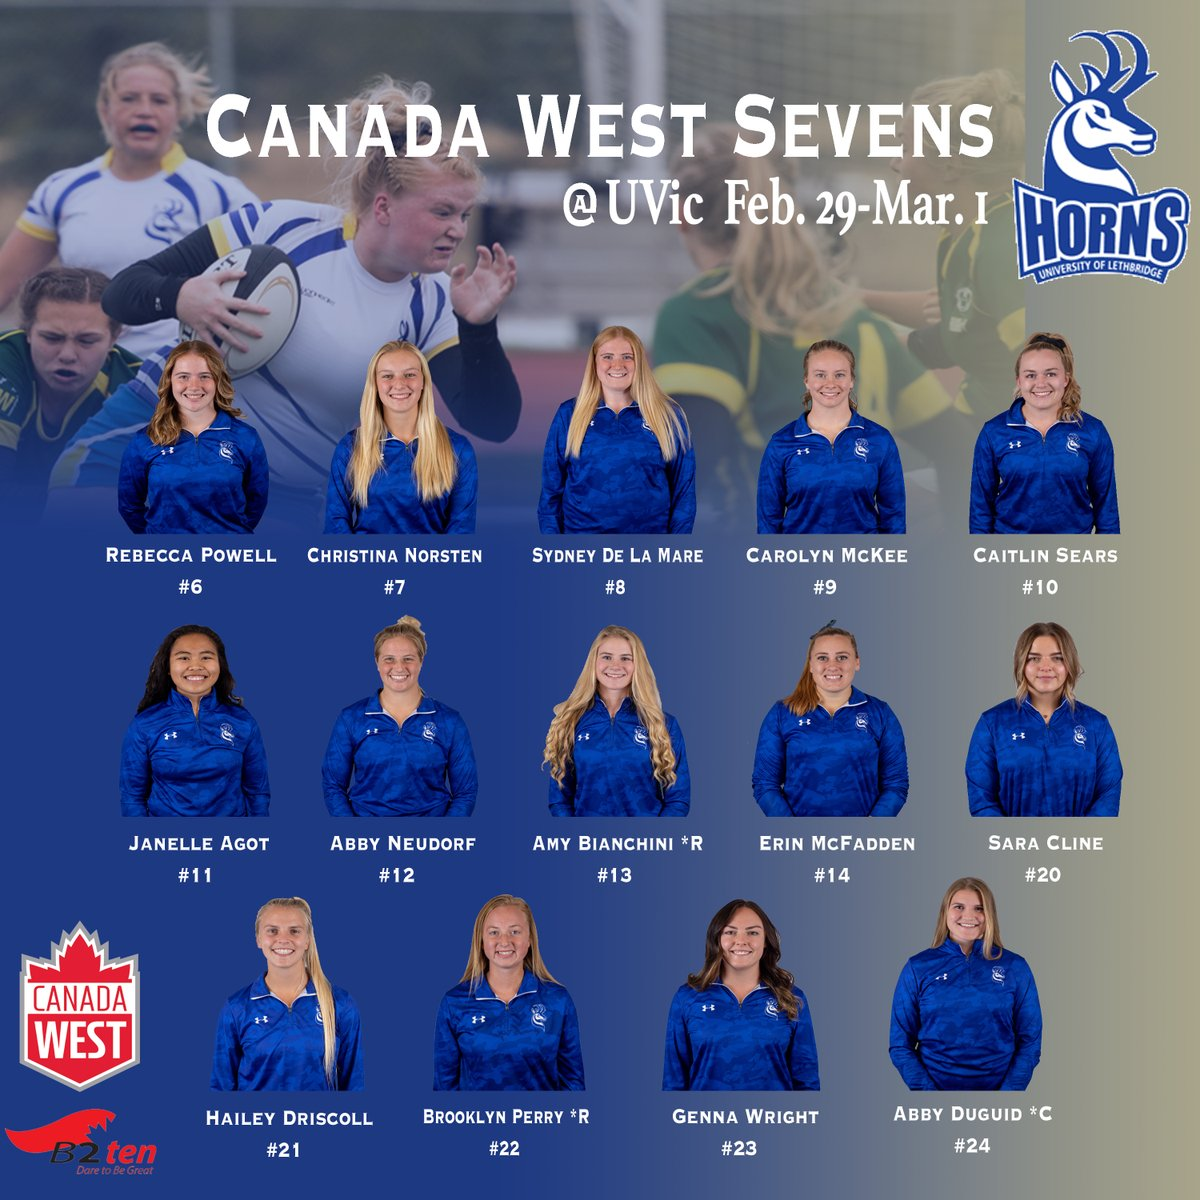 Unchanged roster for UVIC 7s this weekend. These gals will be chasing a podium finish again. Go Horns! @CanadaWest @B2ten @RugbyCanada #yql #wrugby